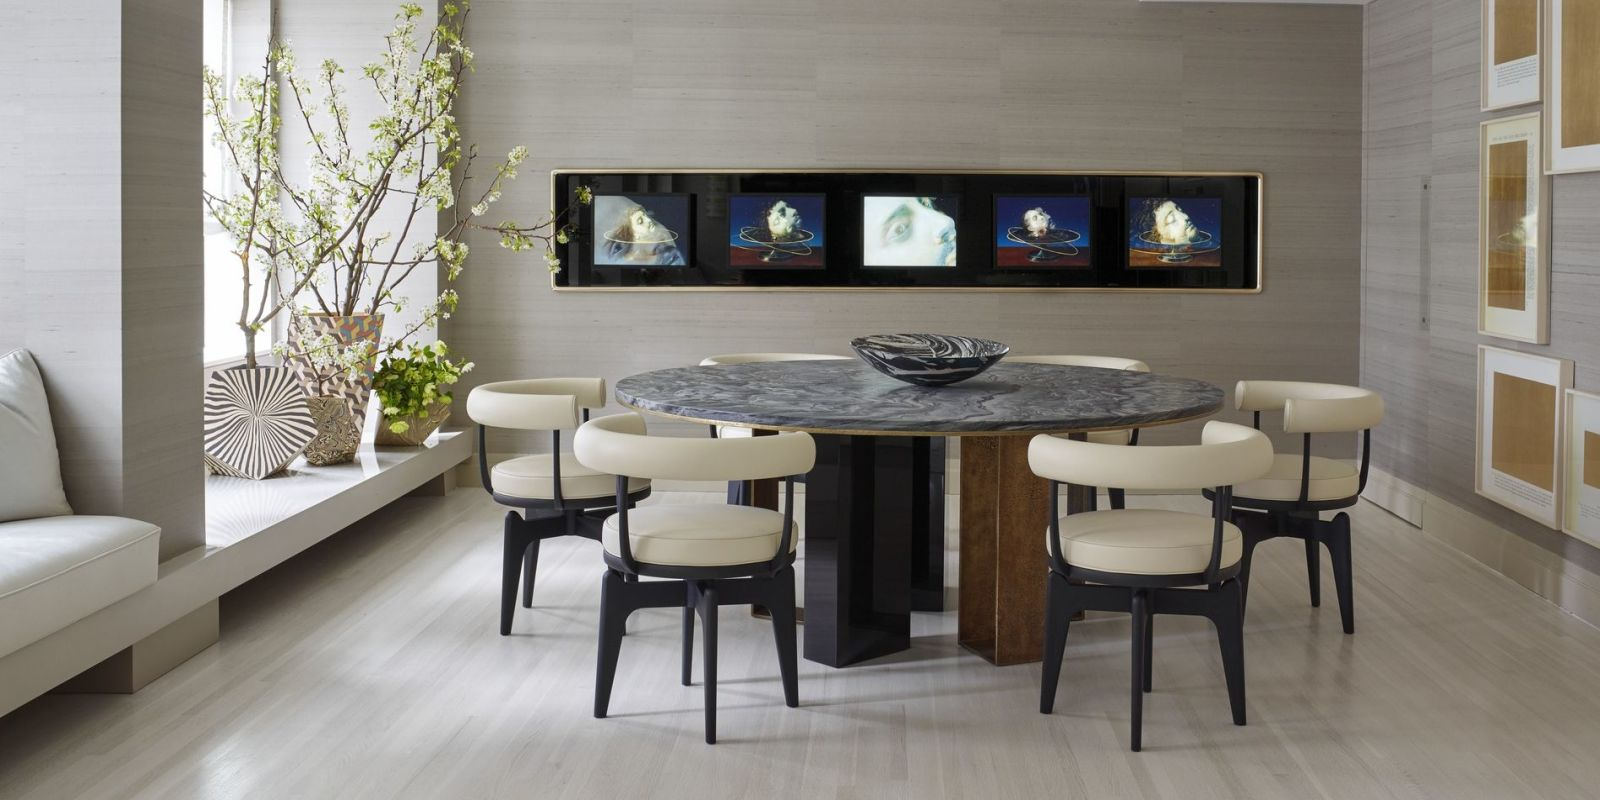 25 modern dining room decorating ideas contemporary for Dinner room design ideas